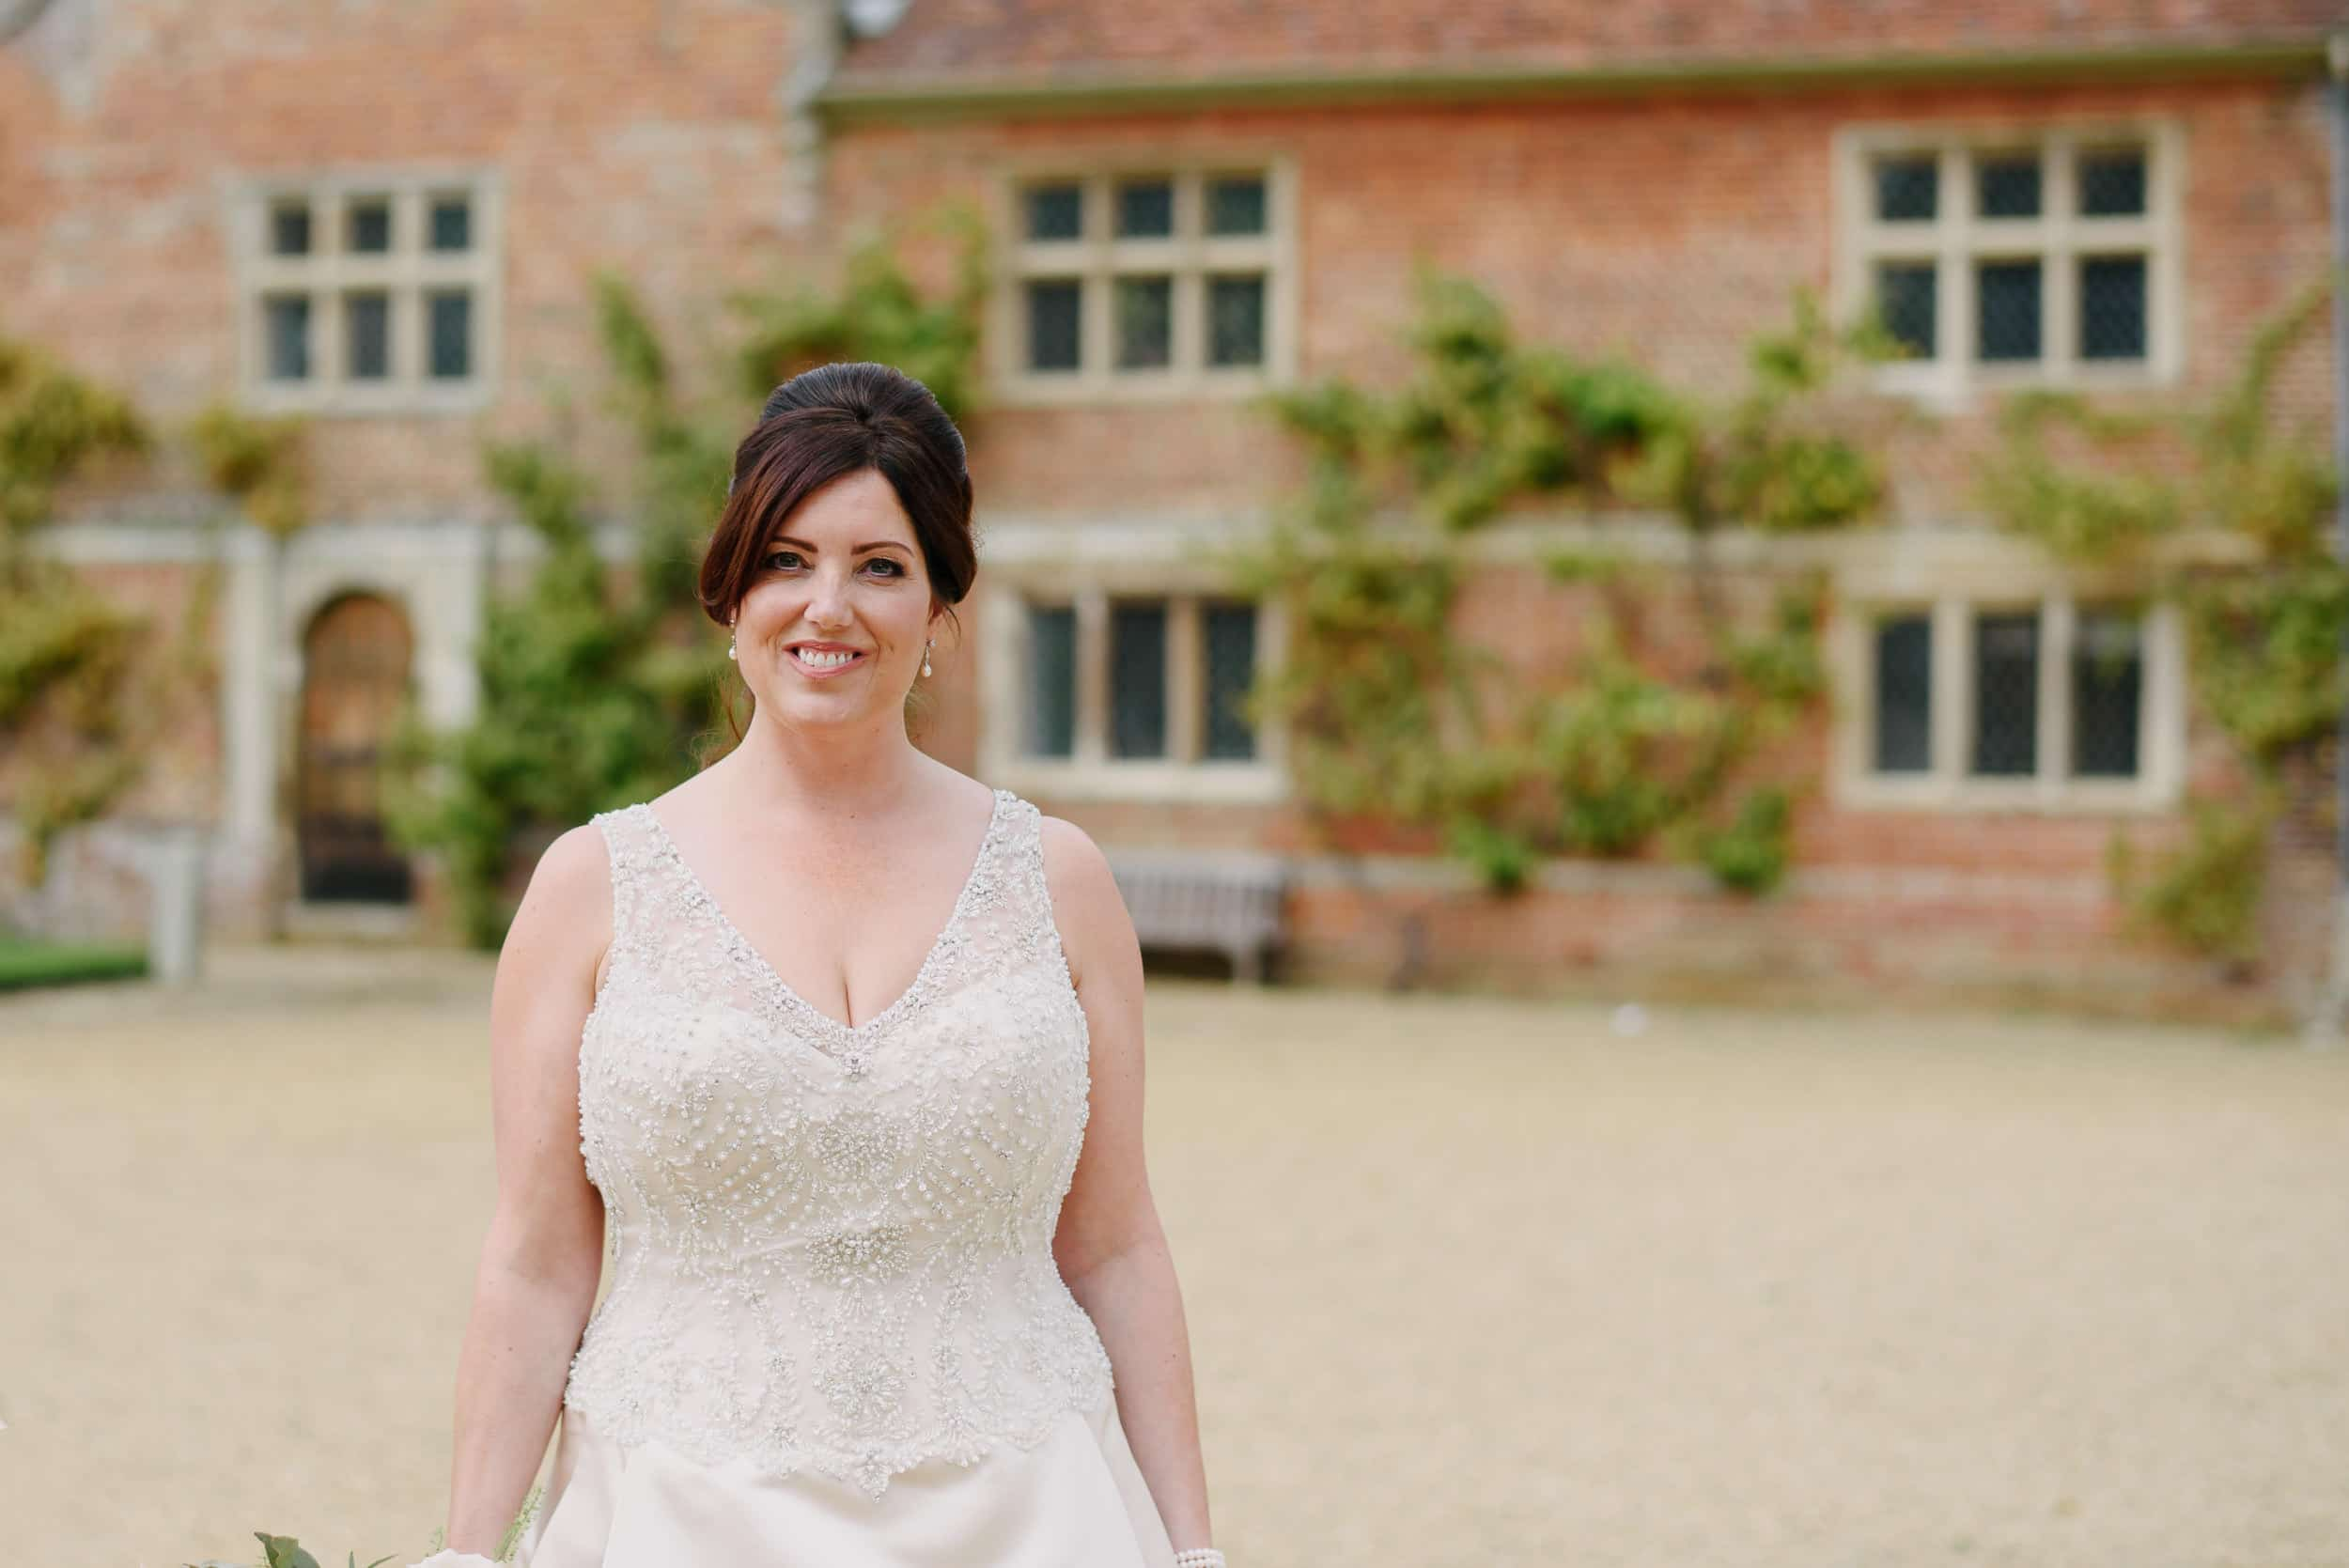 Suzy & Mike - Blickling Hall Wedding 9